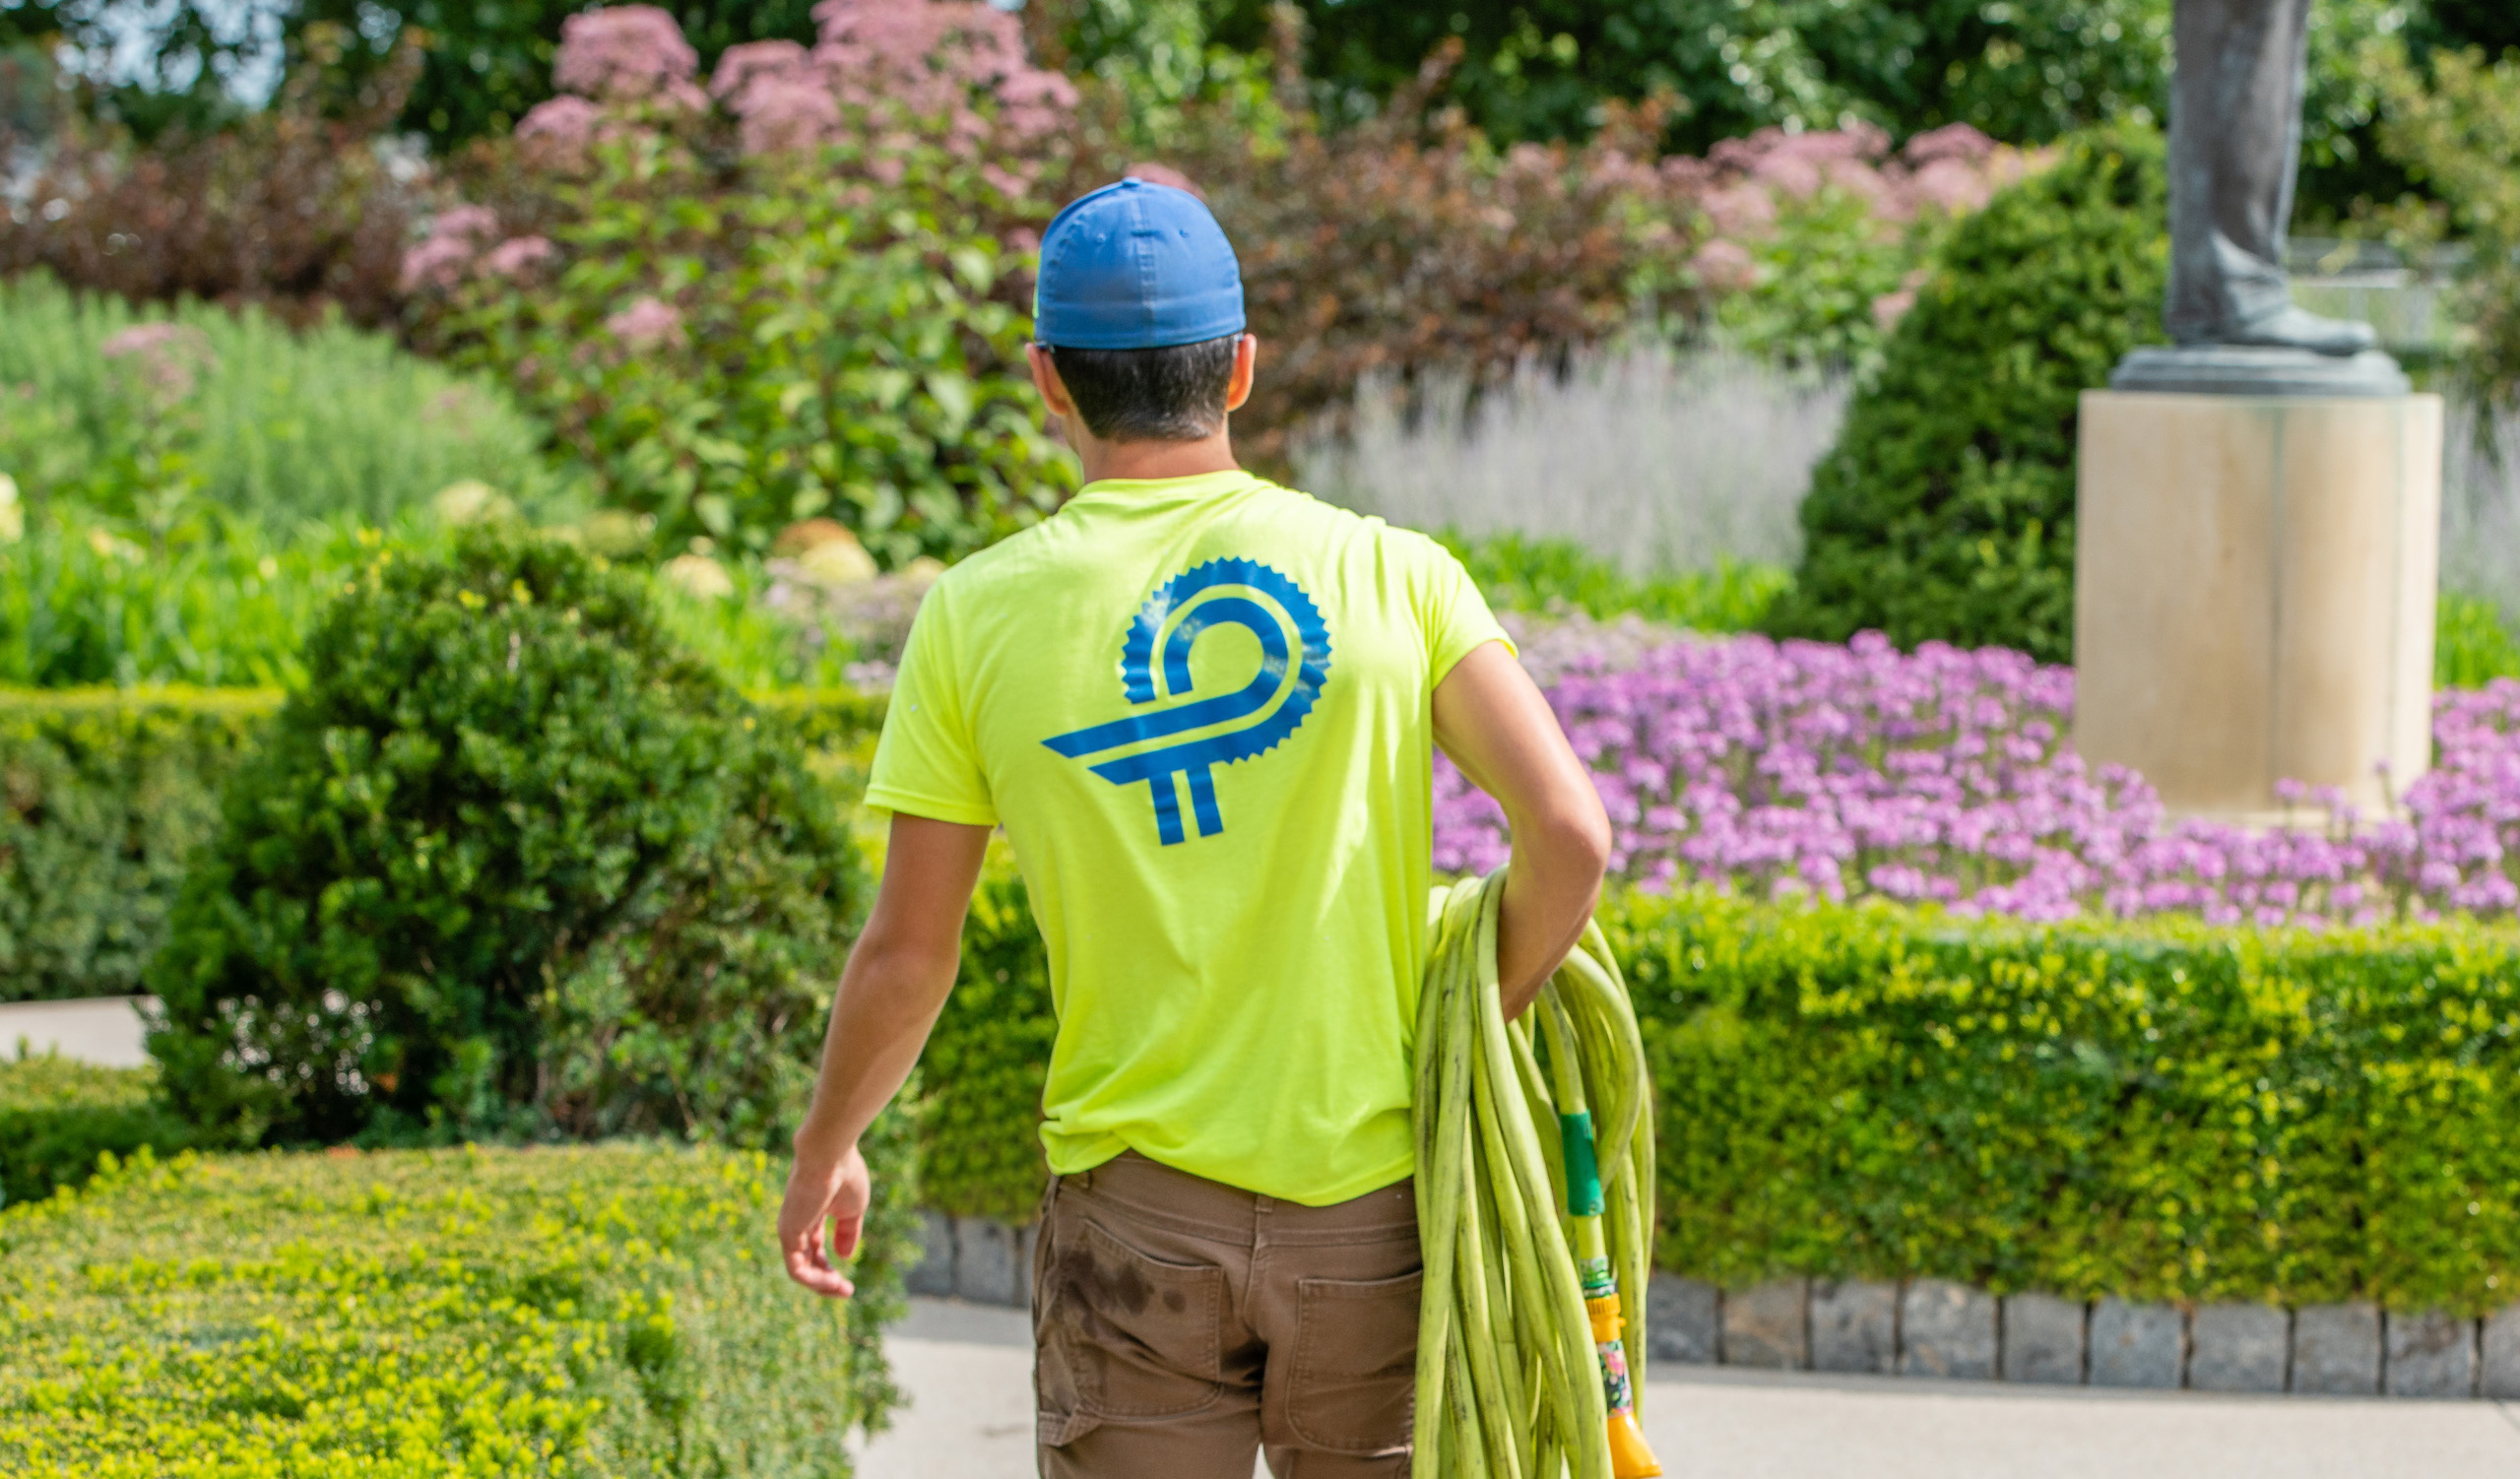 Perficut Employee Carrying Hose To Water Flowers